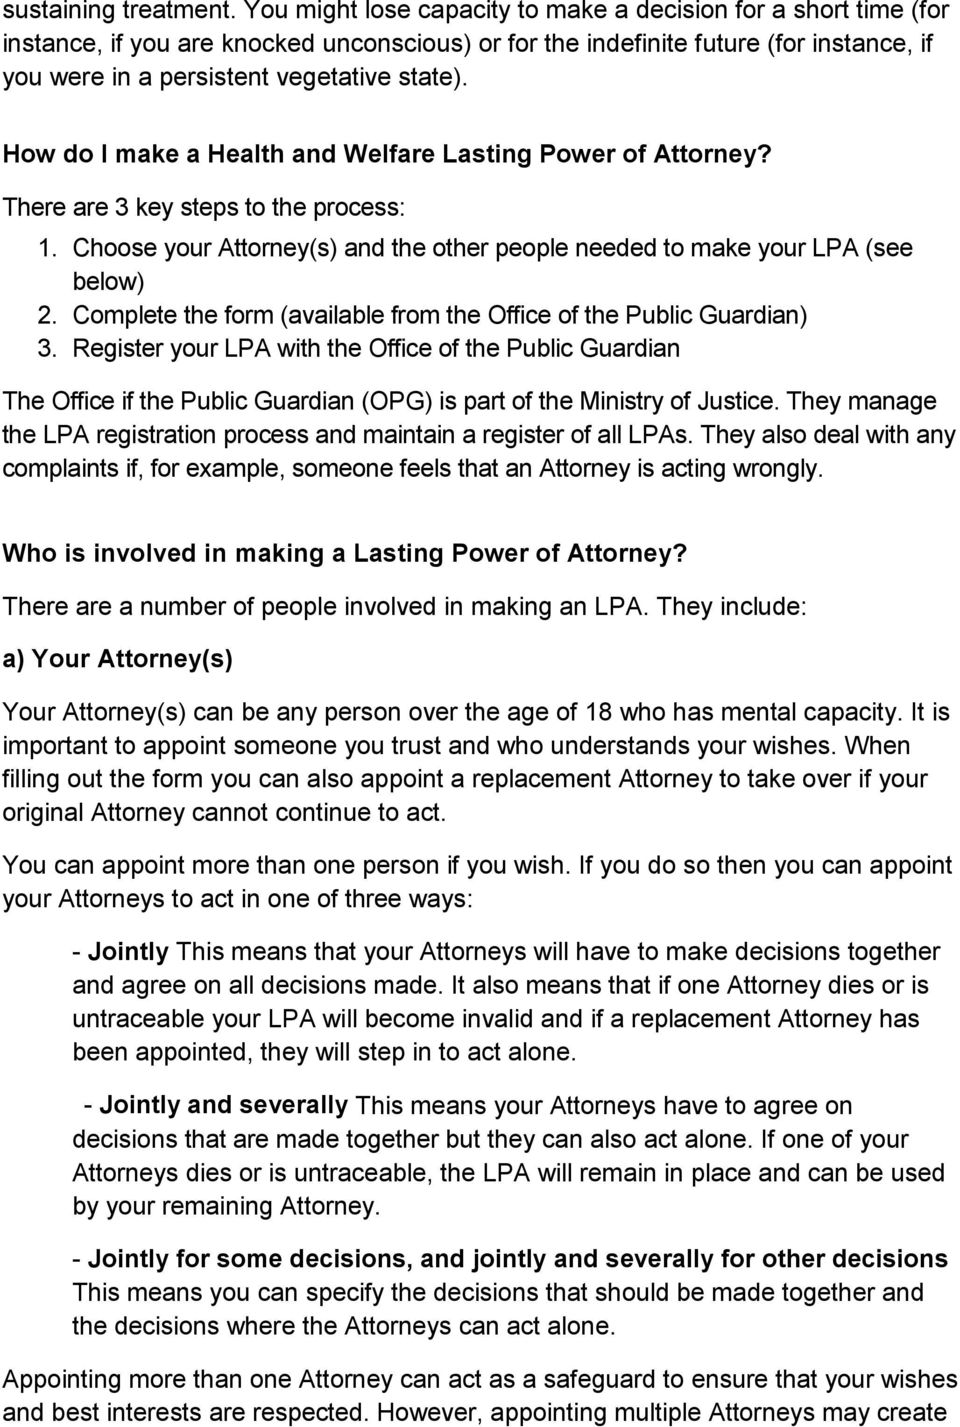 How do I make a Health and Welfare Lasting Power of Attorney? There are 3 key steps to the process: 1. Choose your Attorney(s) and the other people needed to make your LPA (see below) 2.